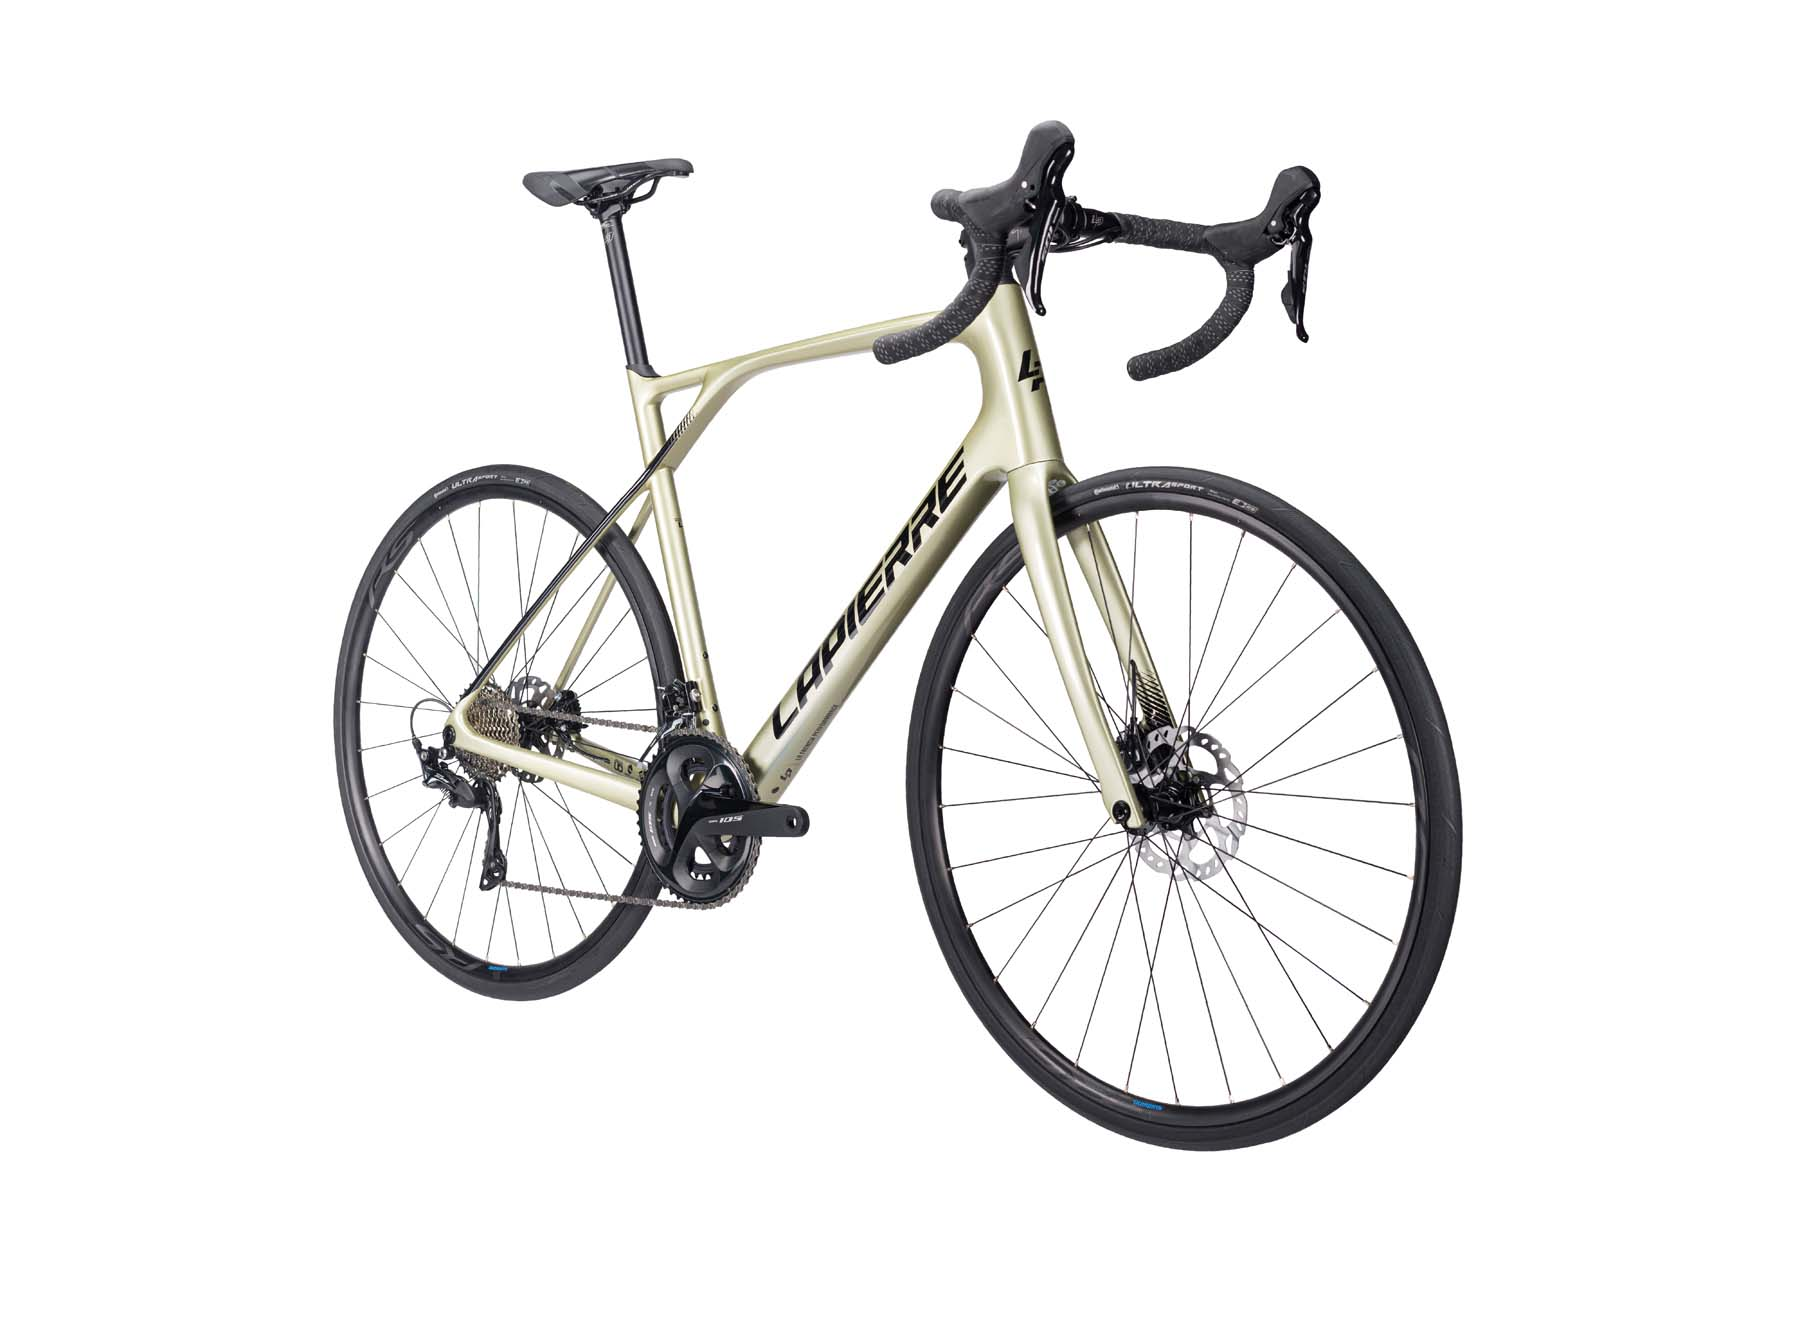 Lapierre Pulsium 5.0 Disc 2021 Endurance Road Bike 5